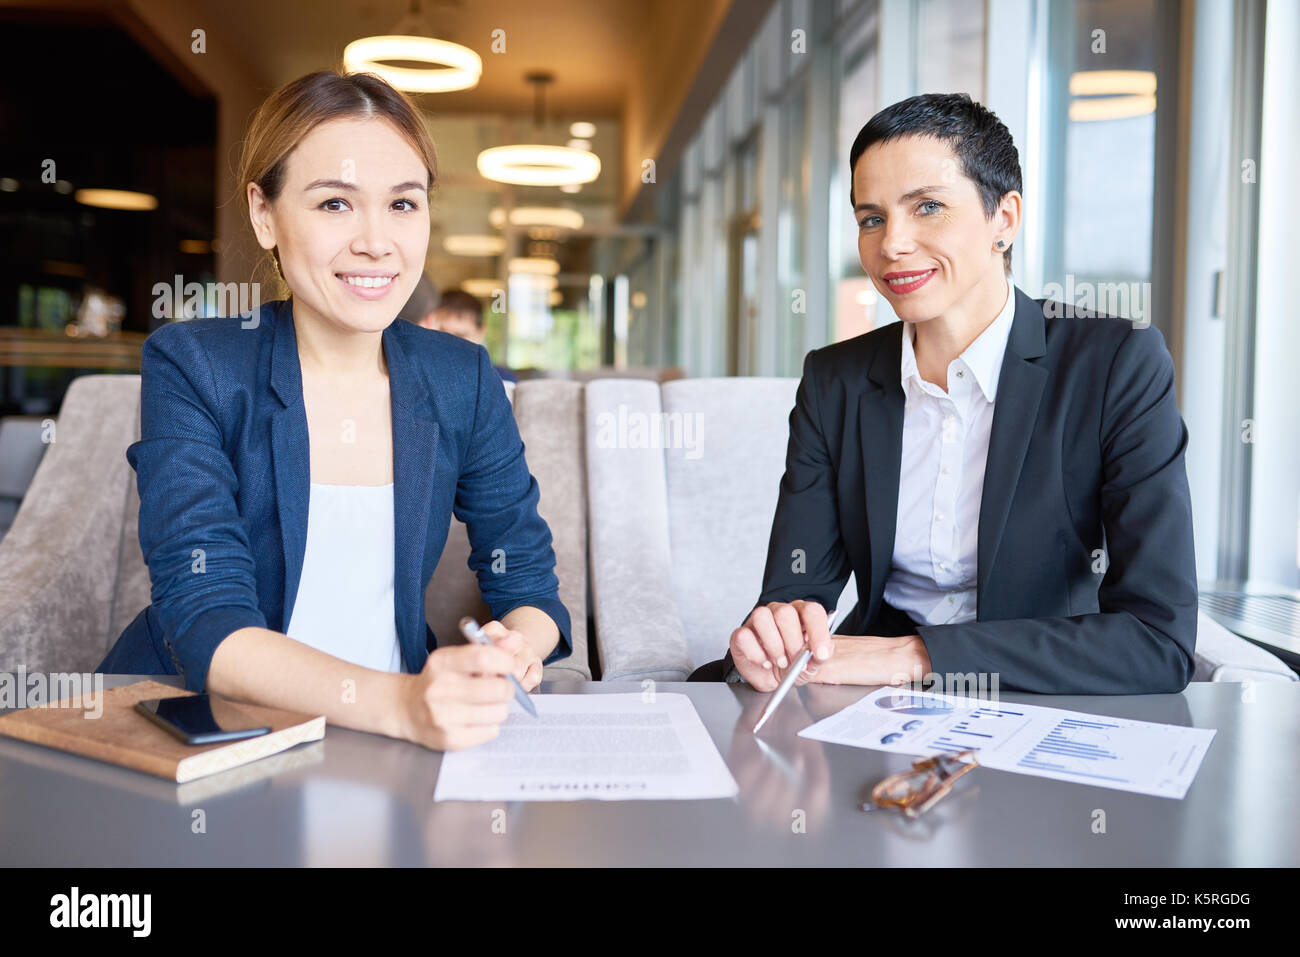 Cheerful business partners posing for photography with toothy smiles while having productive meeting at modern restaurant - Stock Image